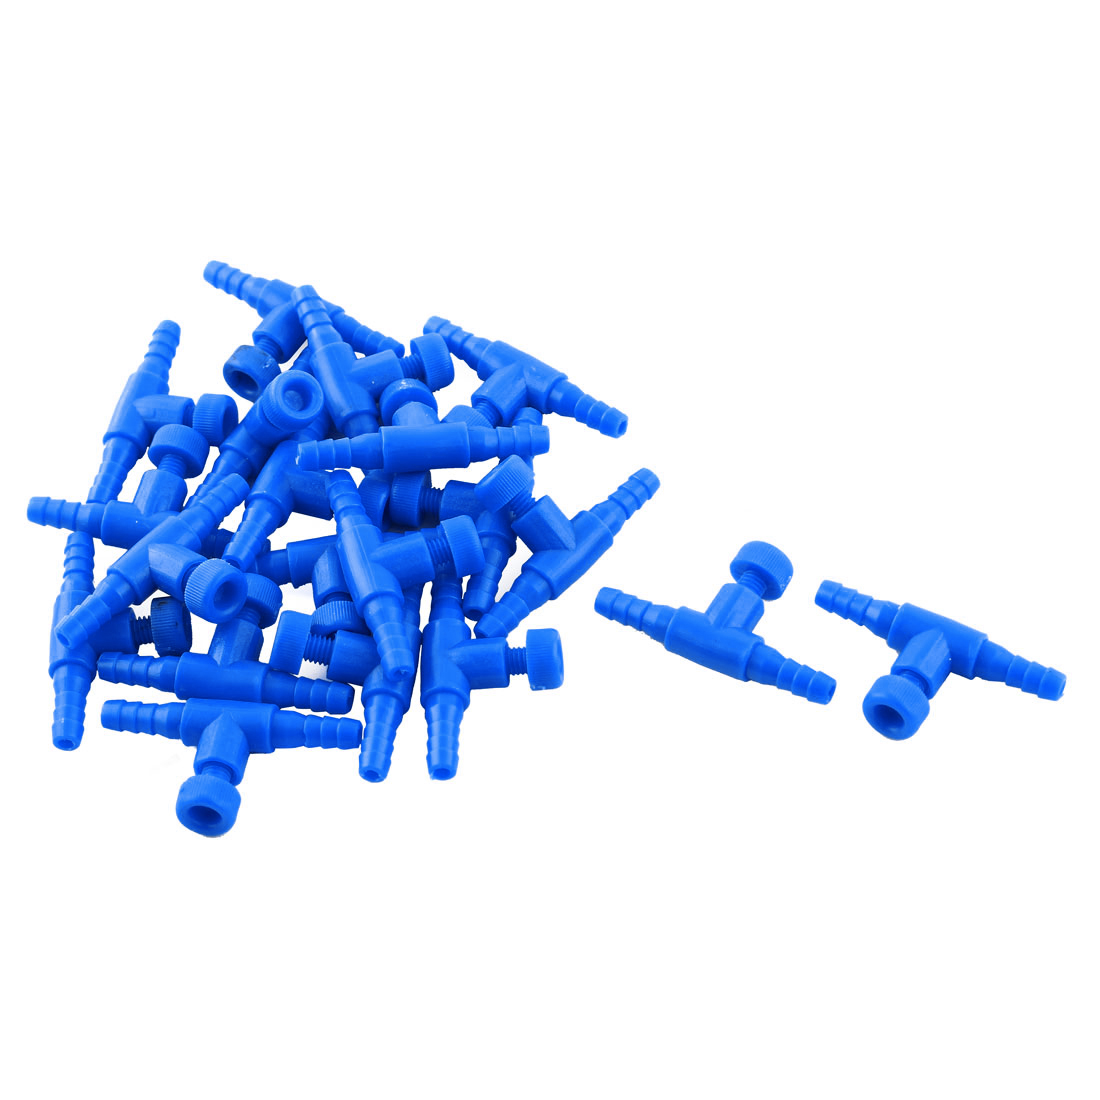 20 Pcs Blue Plastic Fish Tank Aquarium One Way Air Valve Connector